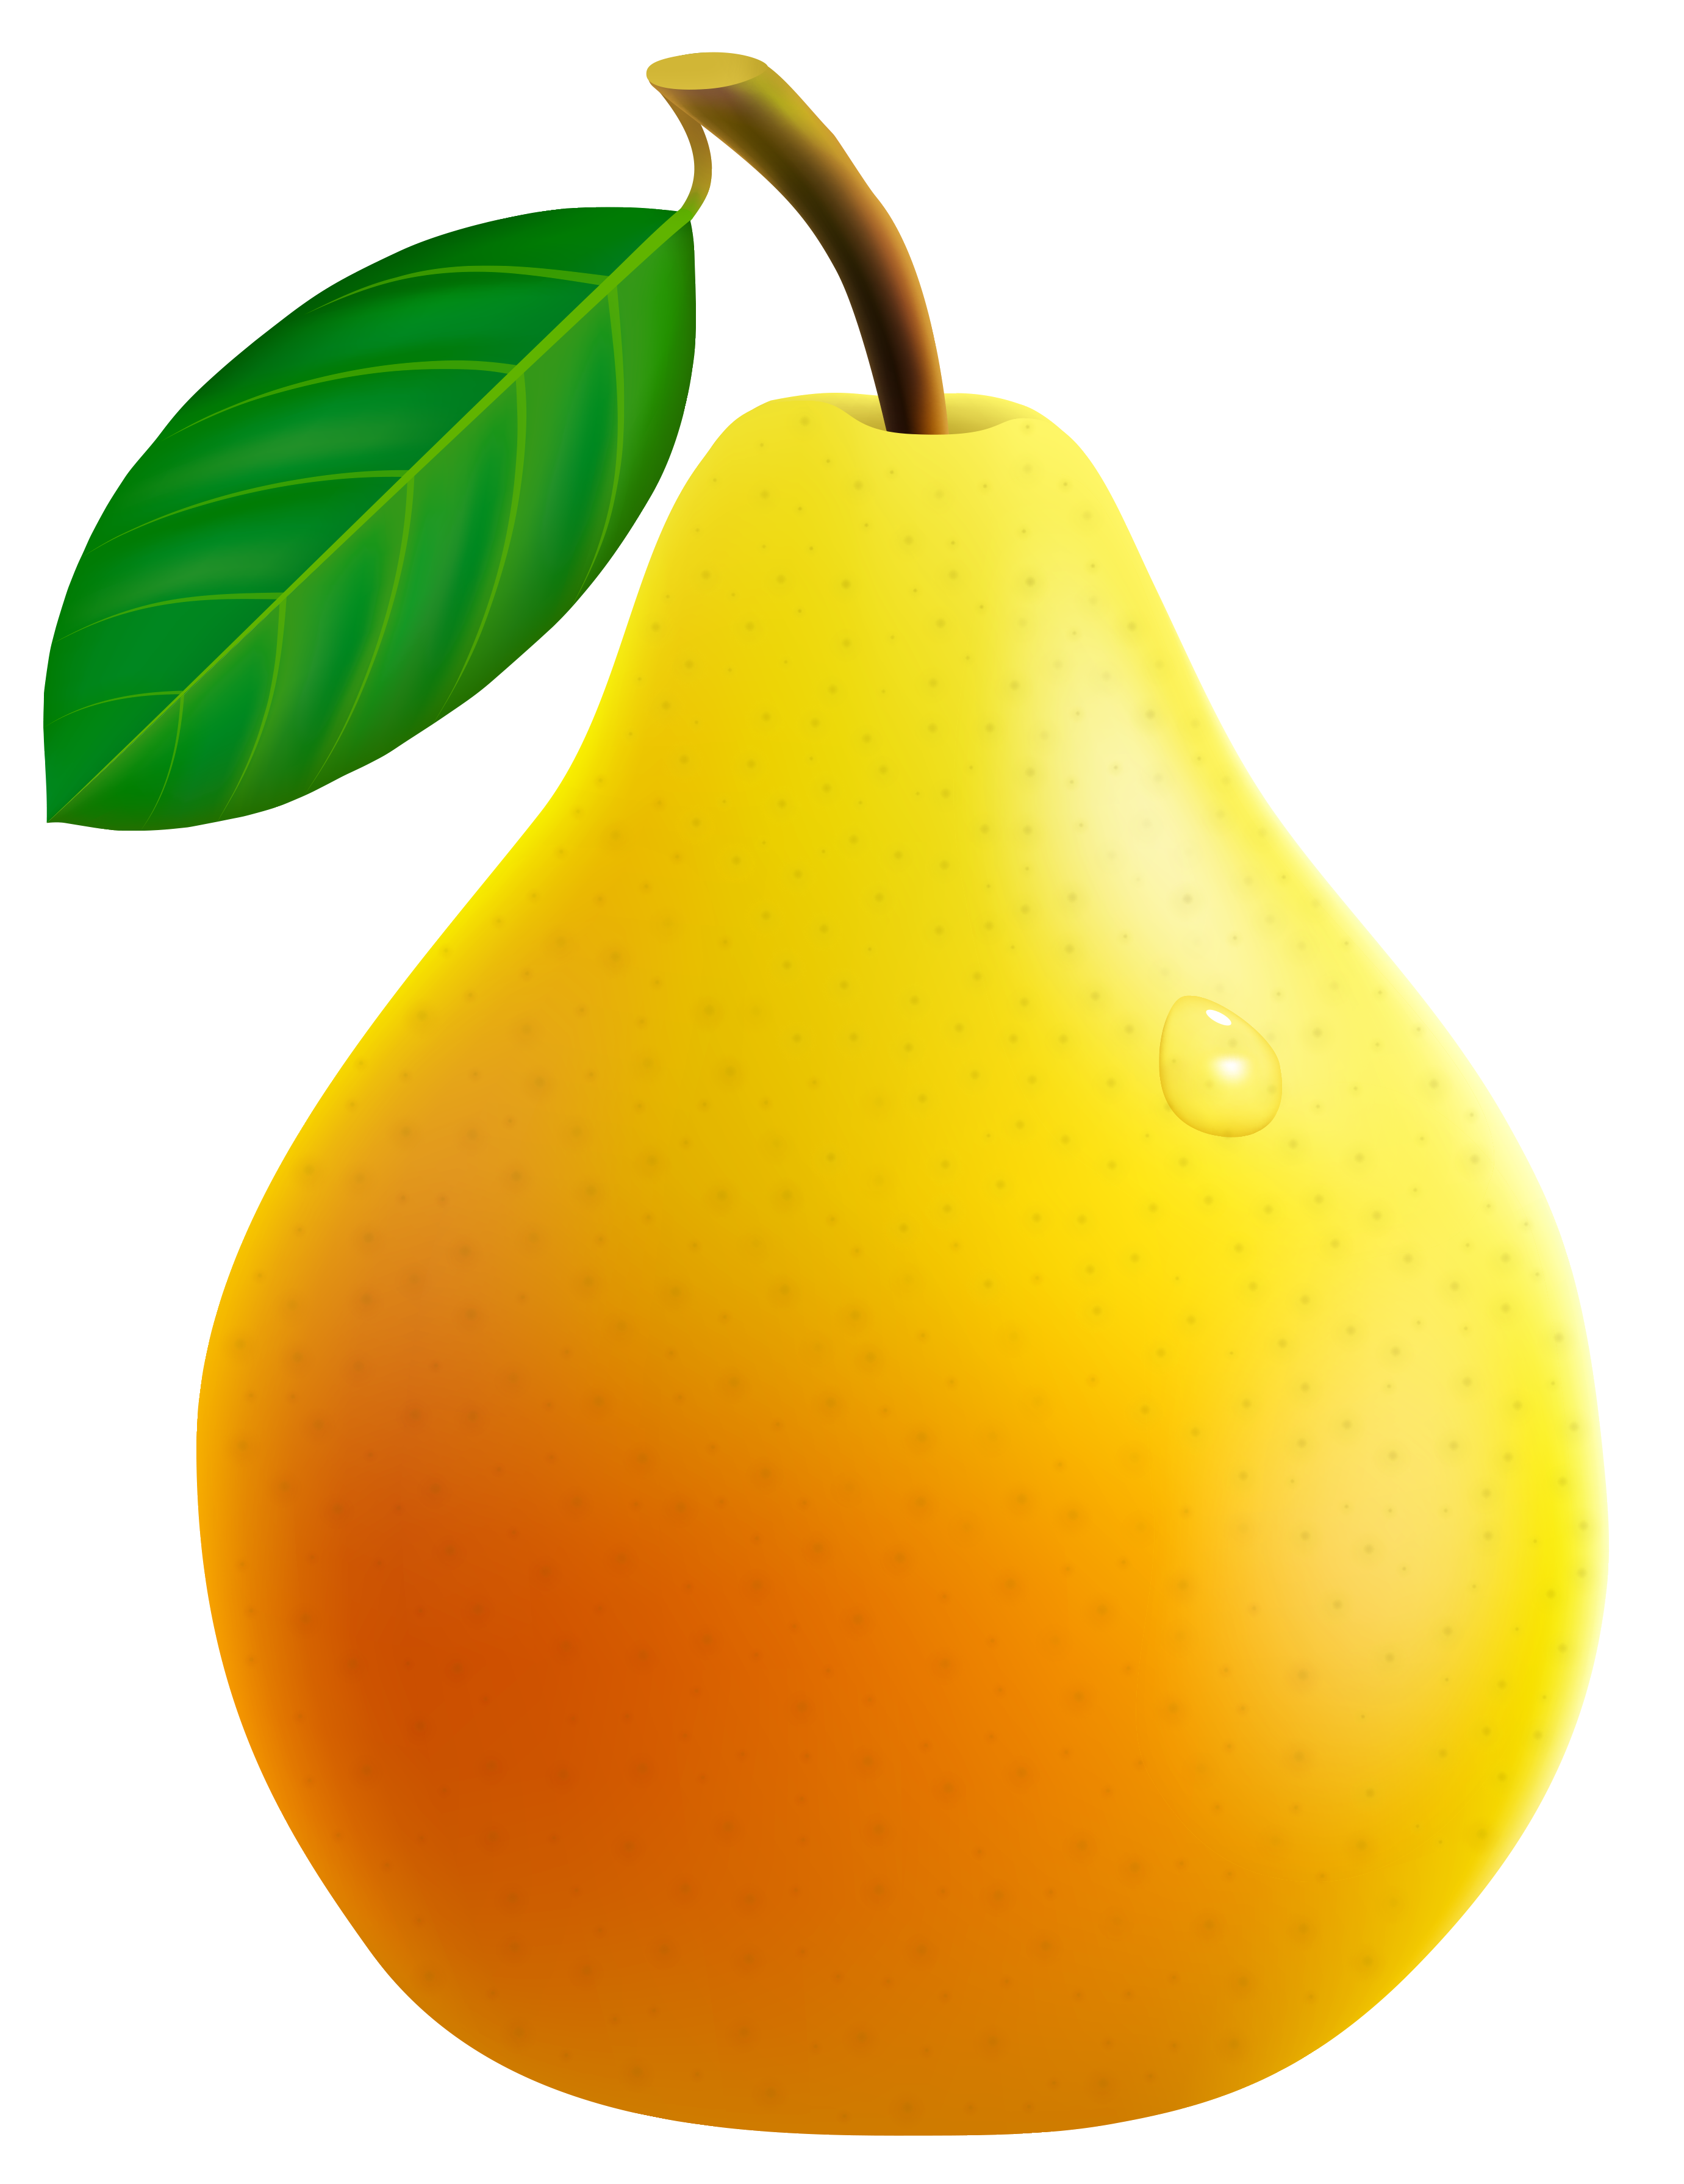 Pear clipart cyan. Yellow png vector image